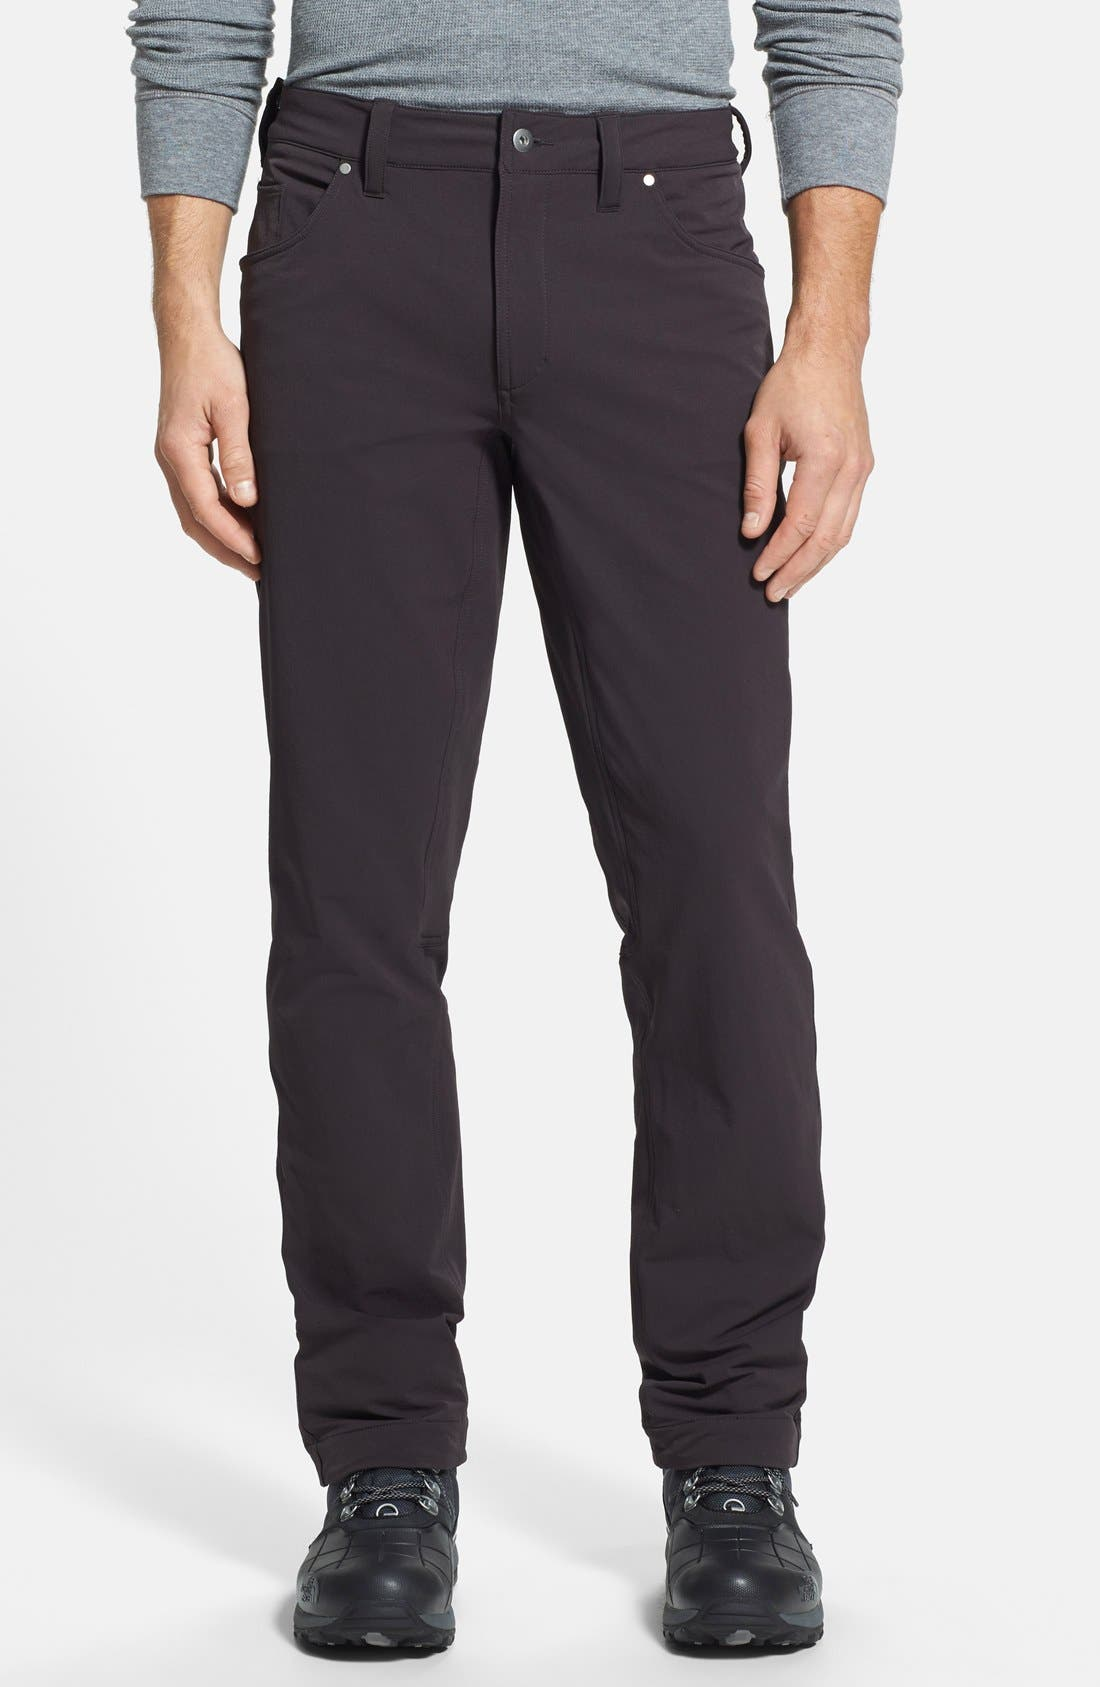 SHOWERS PASS 'Rogue' Water Resistant Pants